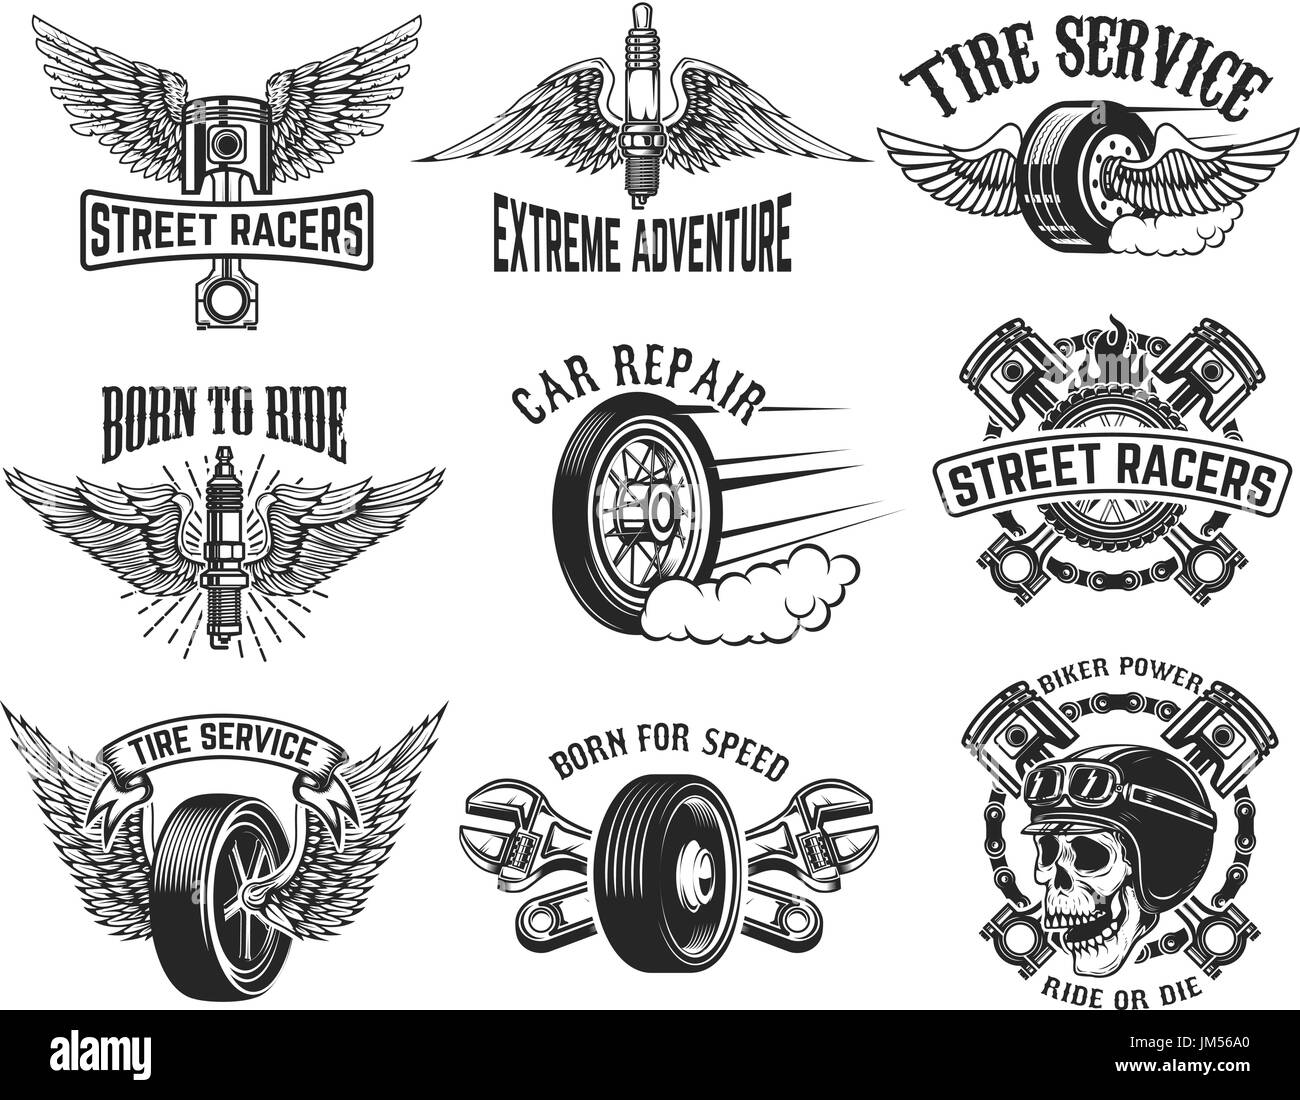 Set of tire service, car repair labels  Design elements for logo